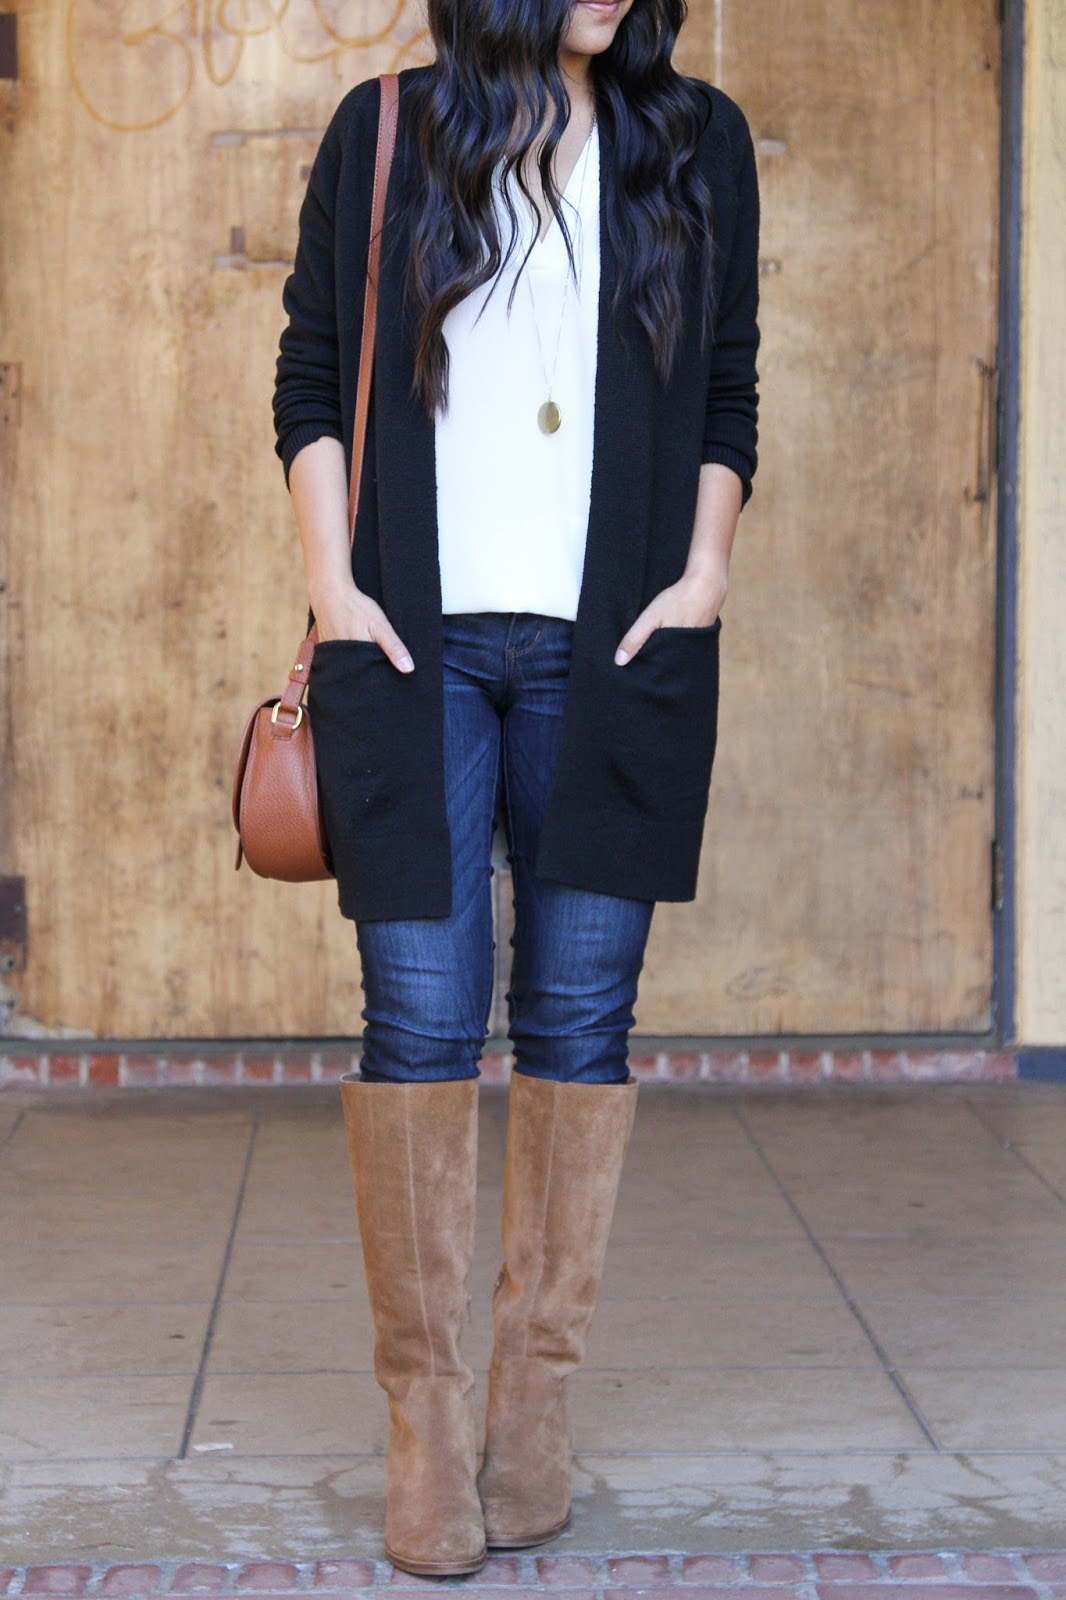 White Blouse + Black Cardigan + Skinnies + Riding Boots + Pendant Necklace